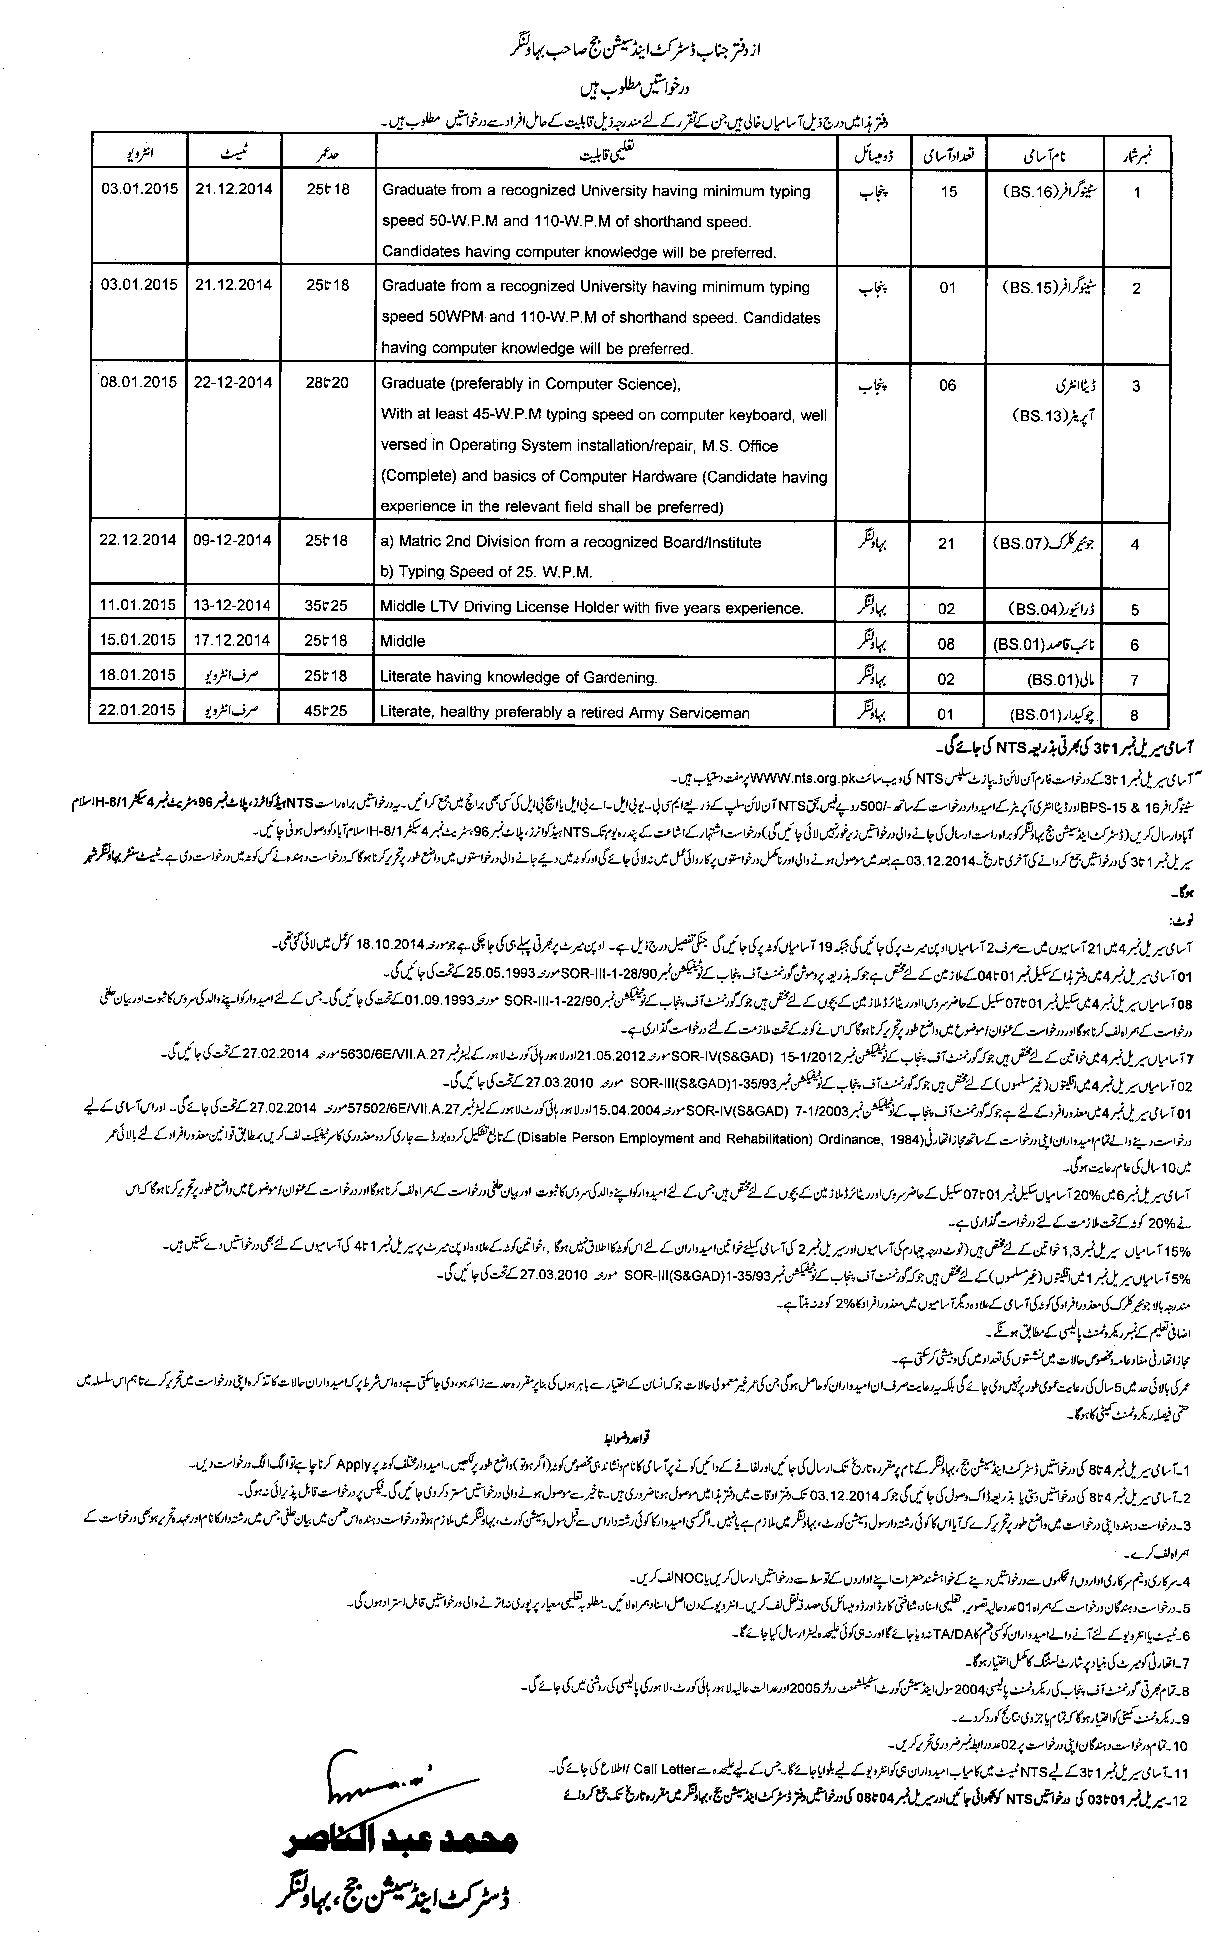 Session Court Bahawalnagar jobs 2014